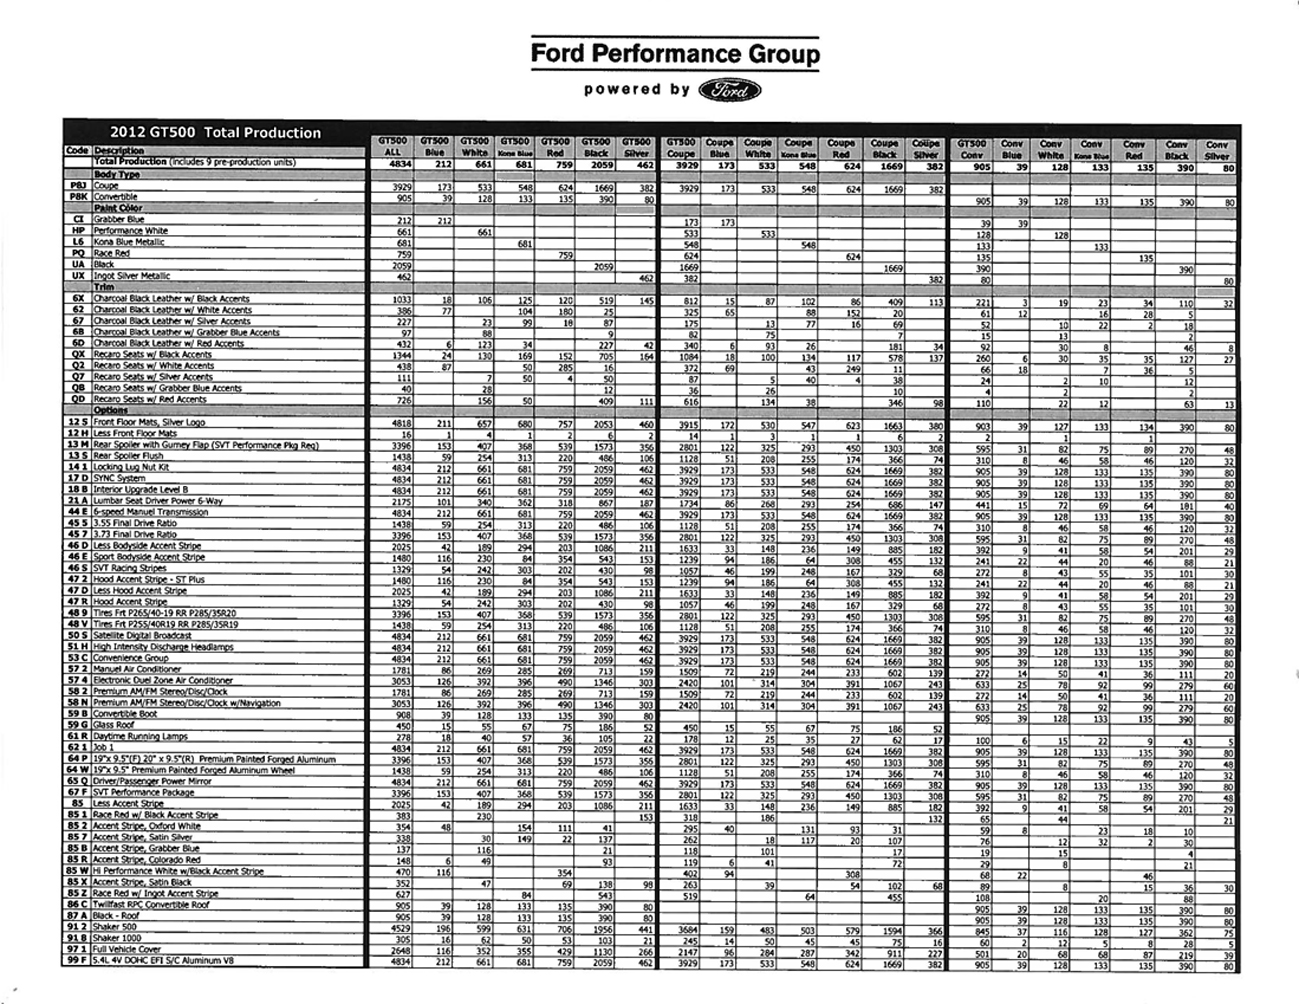 2012GT500ProductionTotals1.jpg